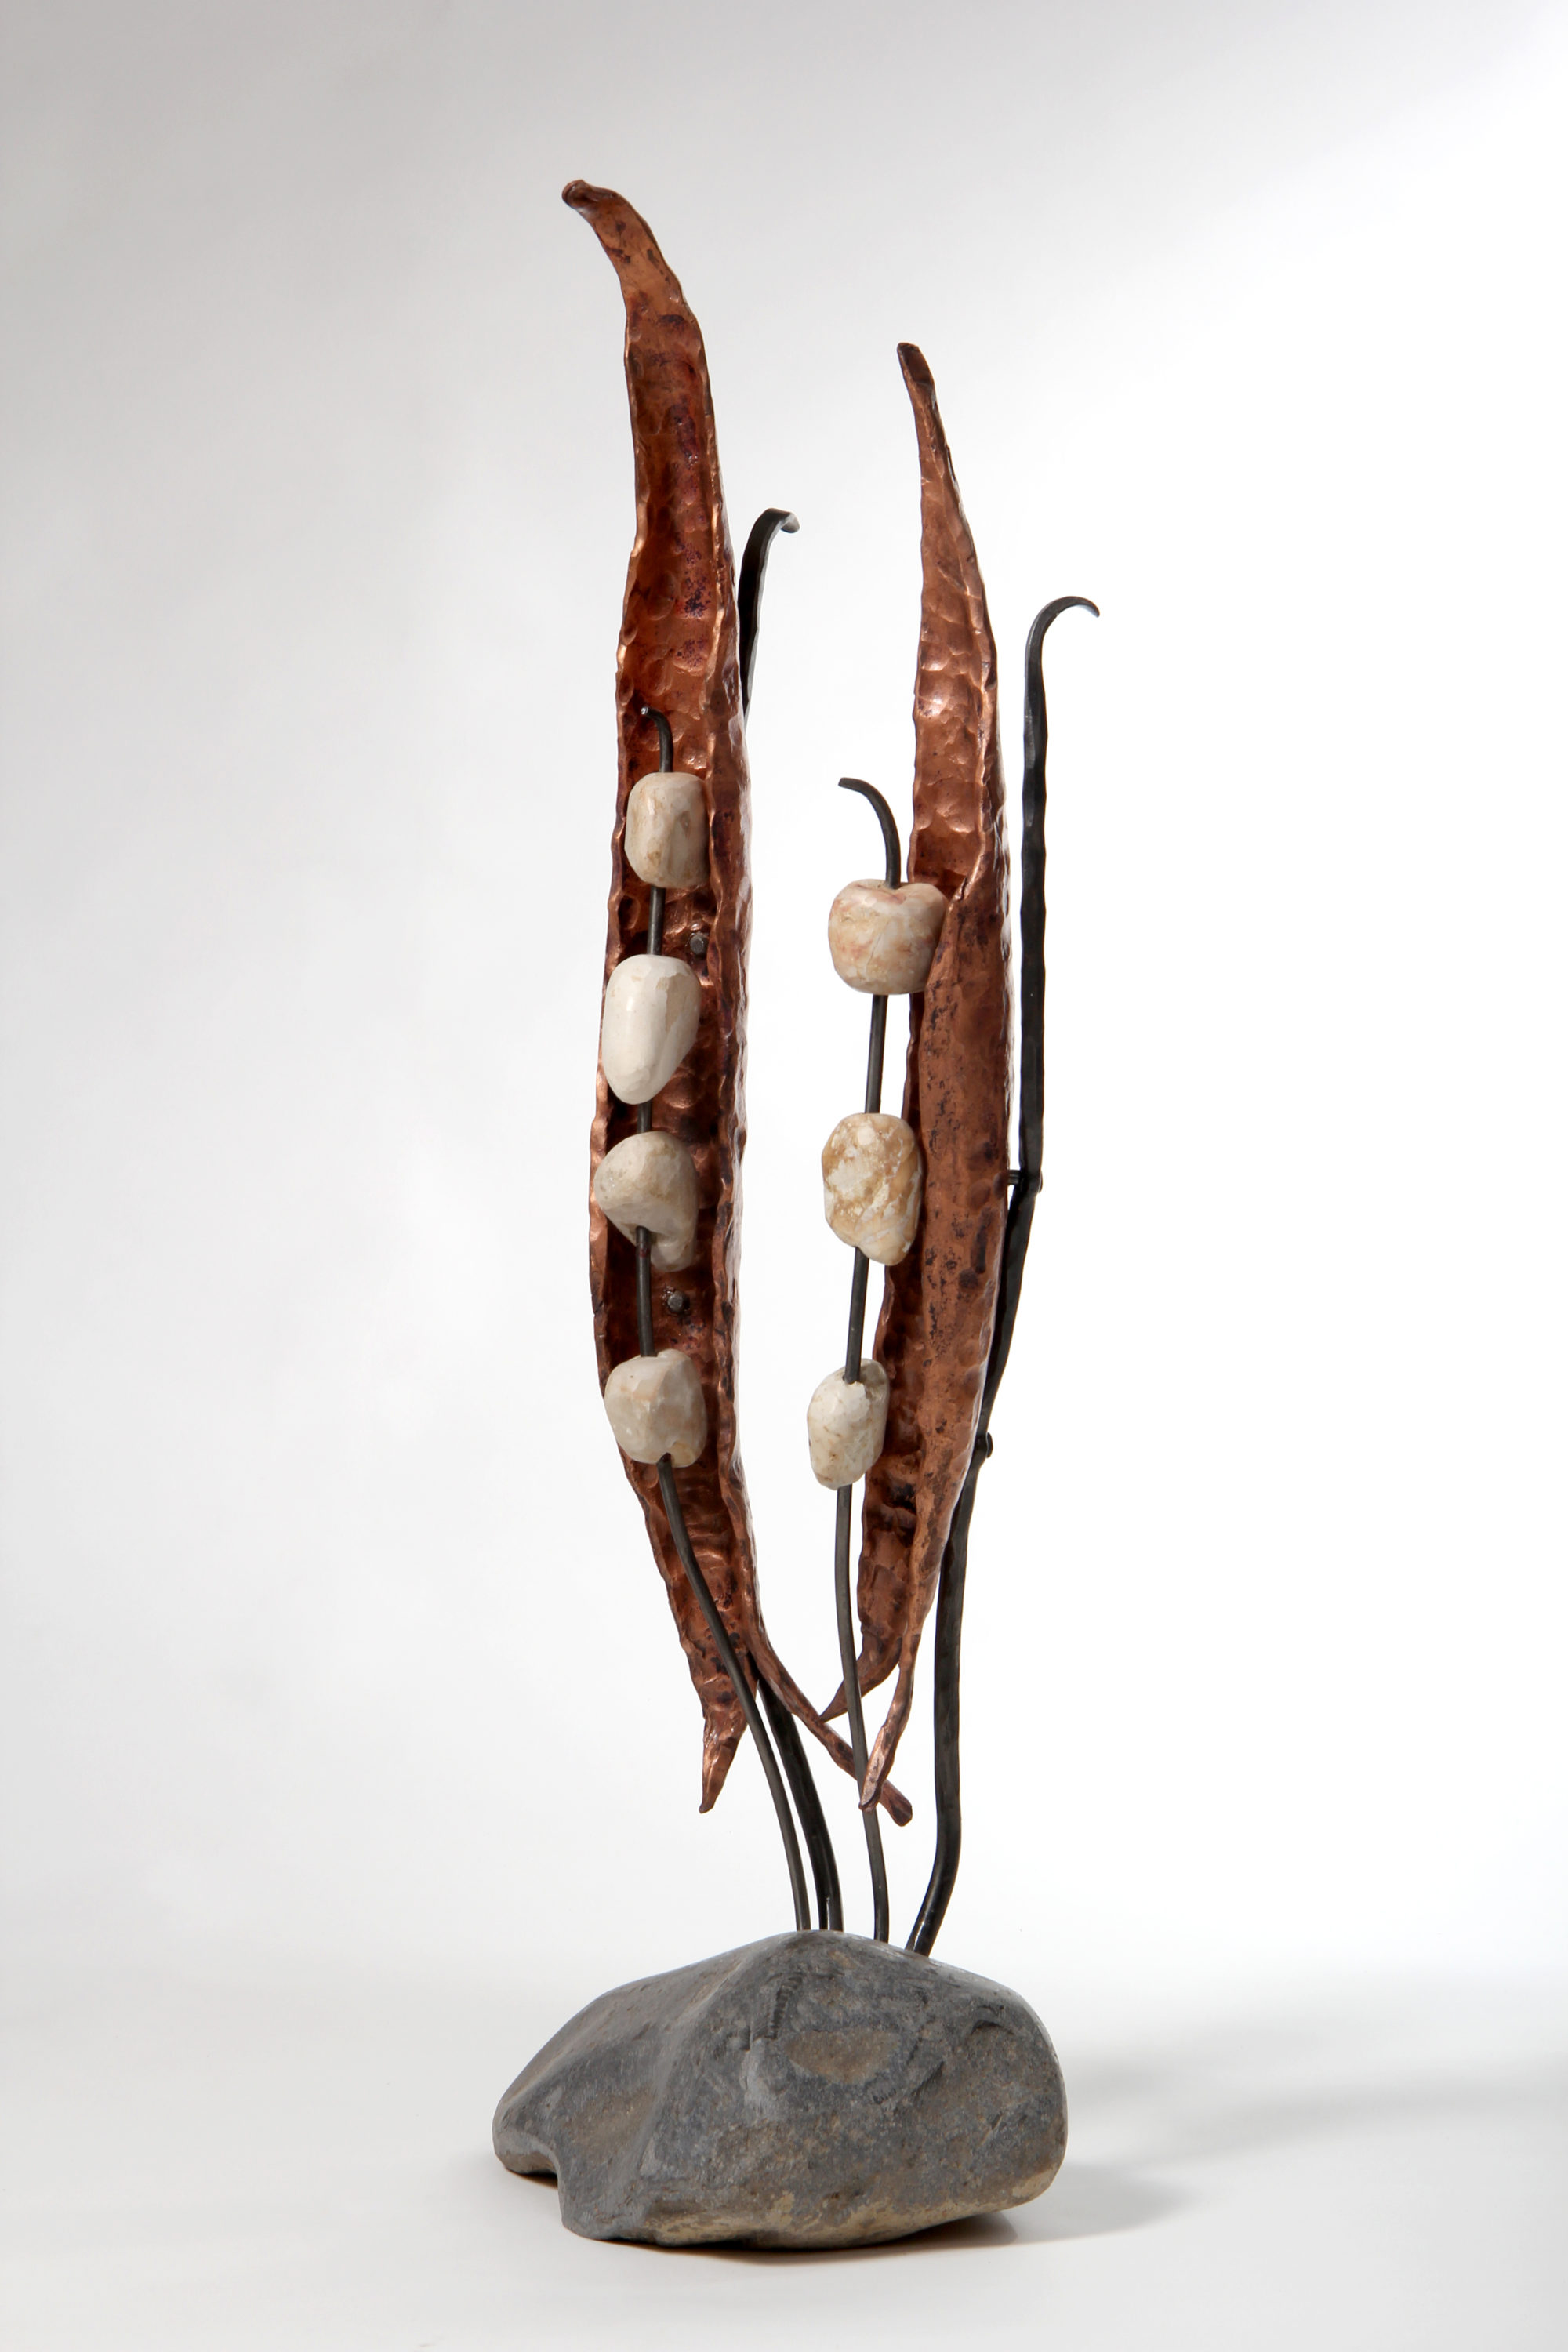 'Peas' - A sculpture of Forged Iron, River Stones & Copper